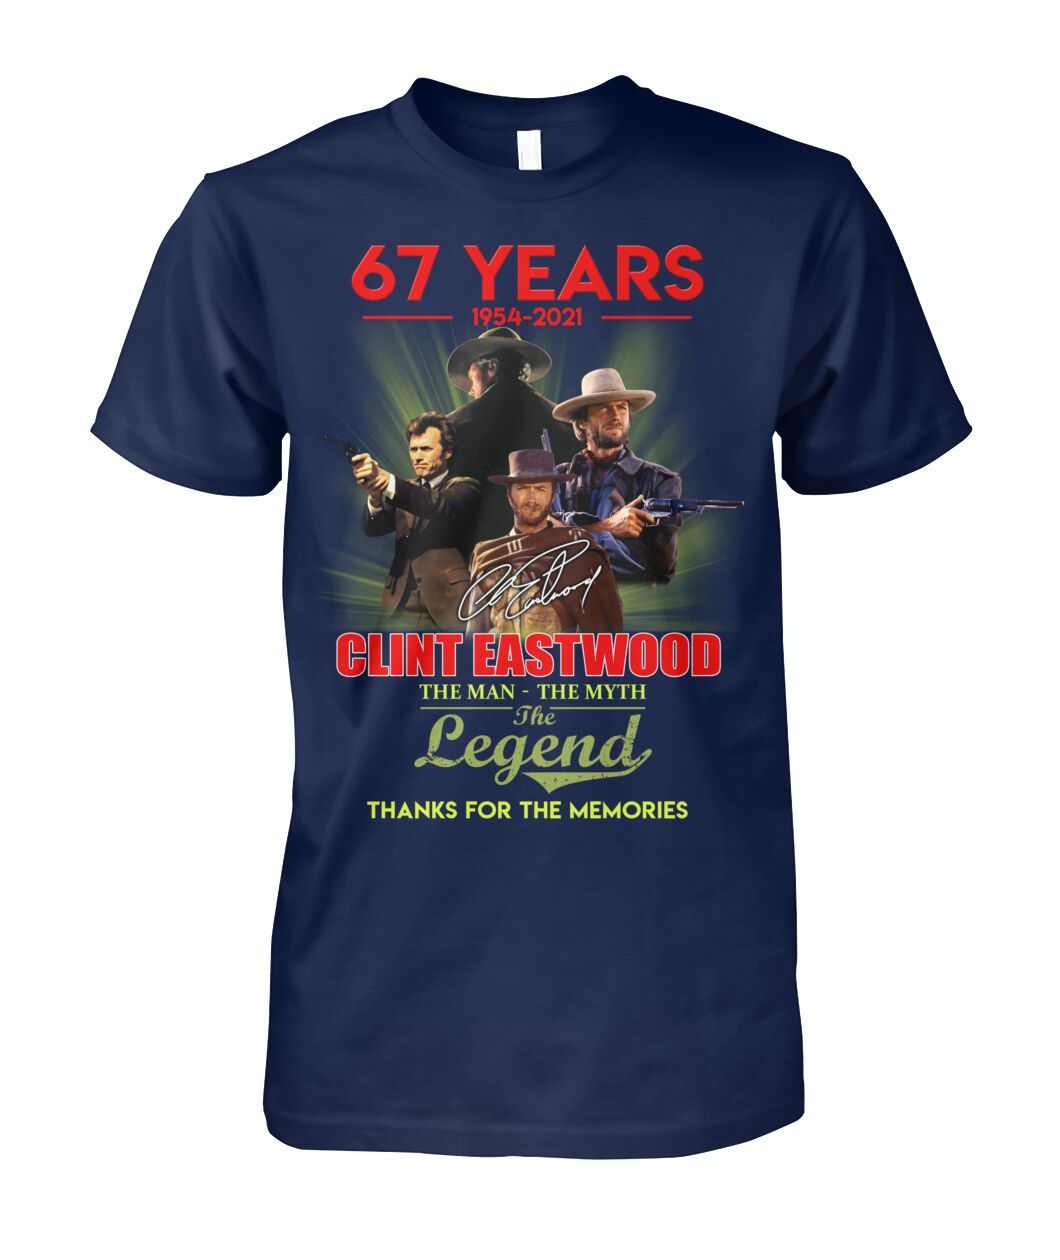 67 Years Clint Eastwood Shirt